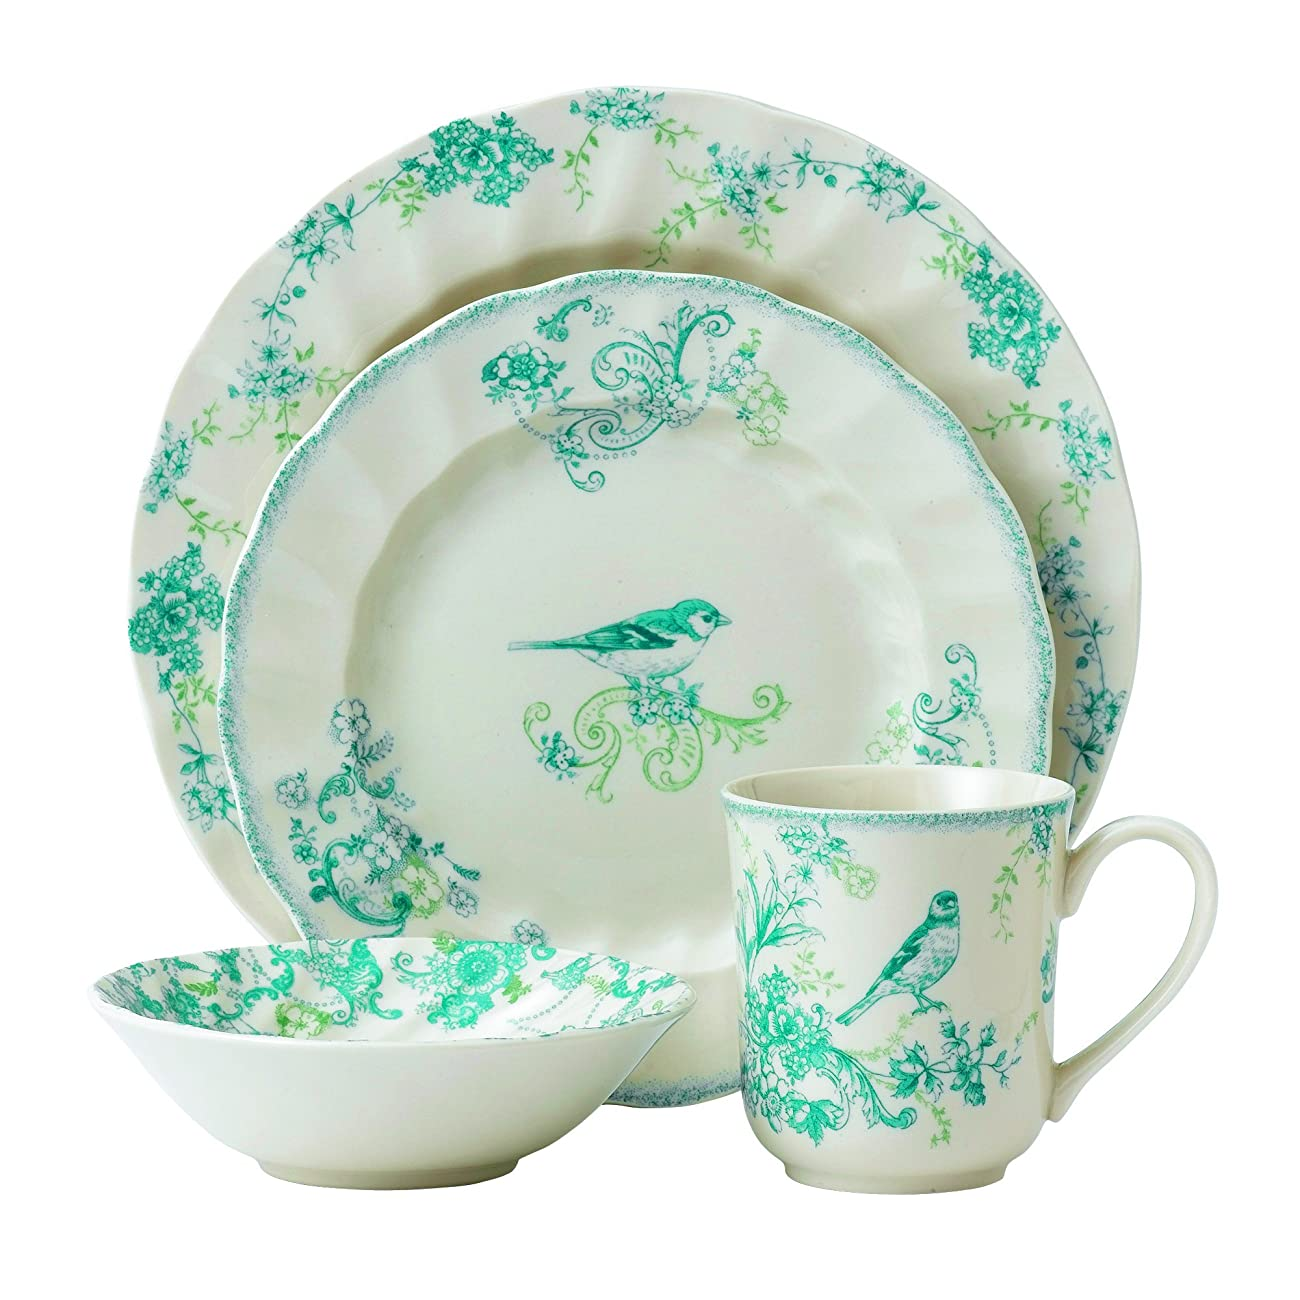 Johnson Brothers Vintage Charm 4 Piece Place Set, Multicolored 0